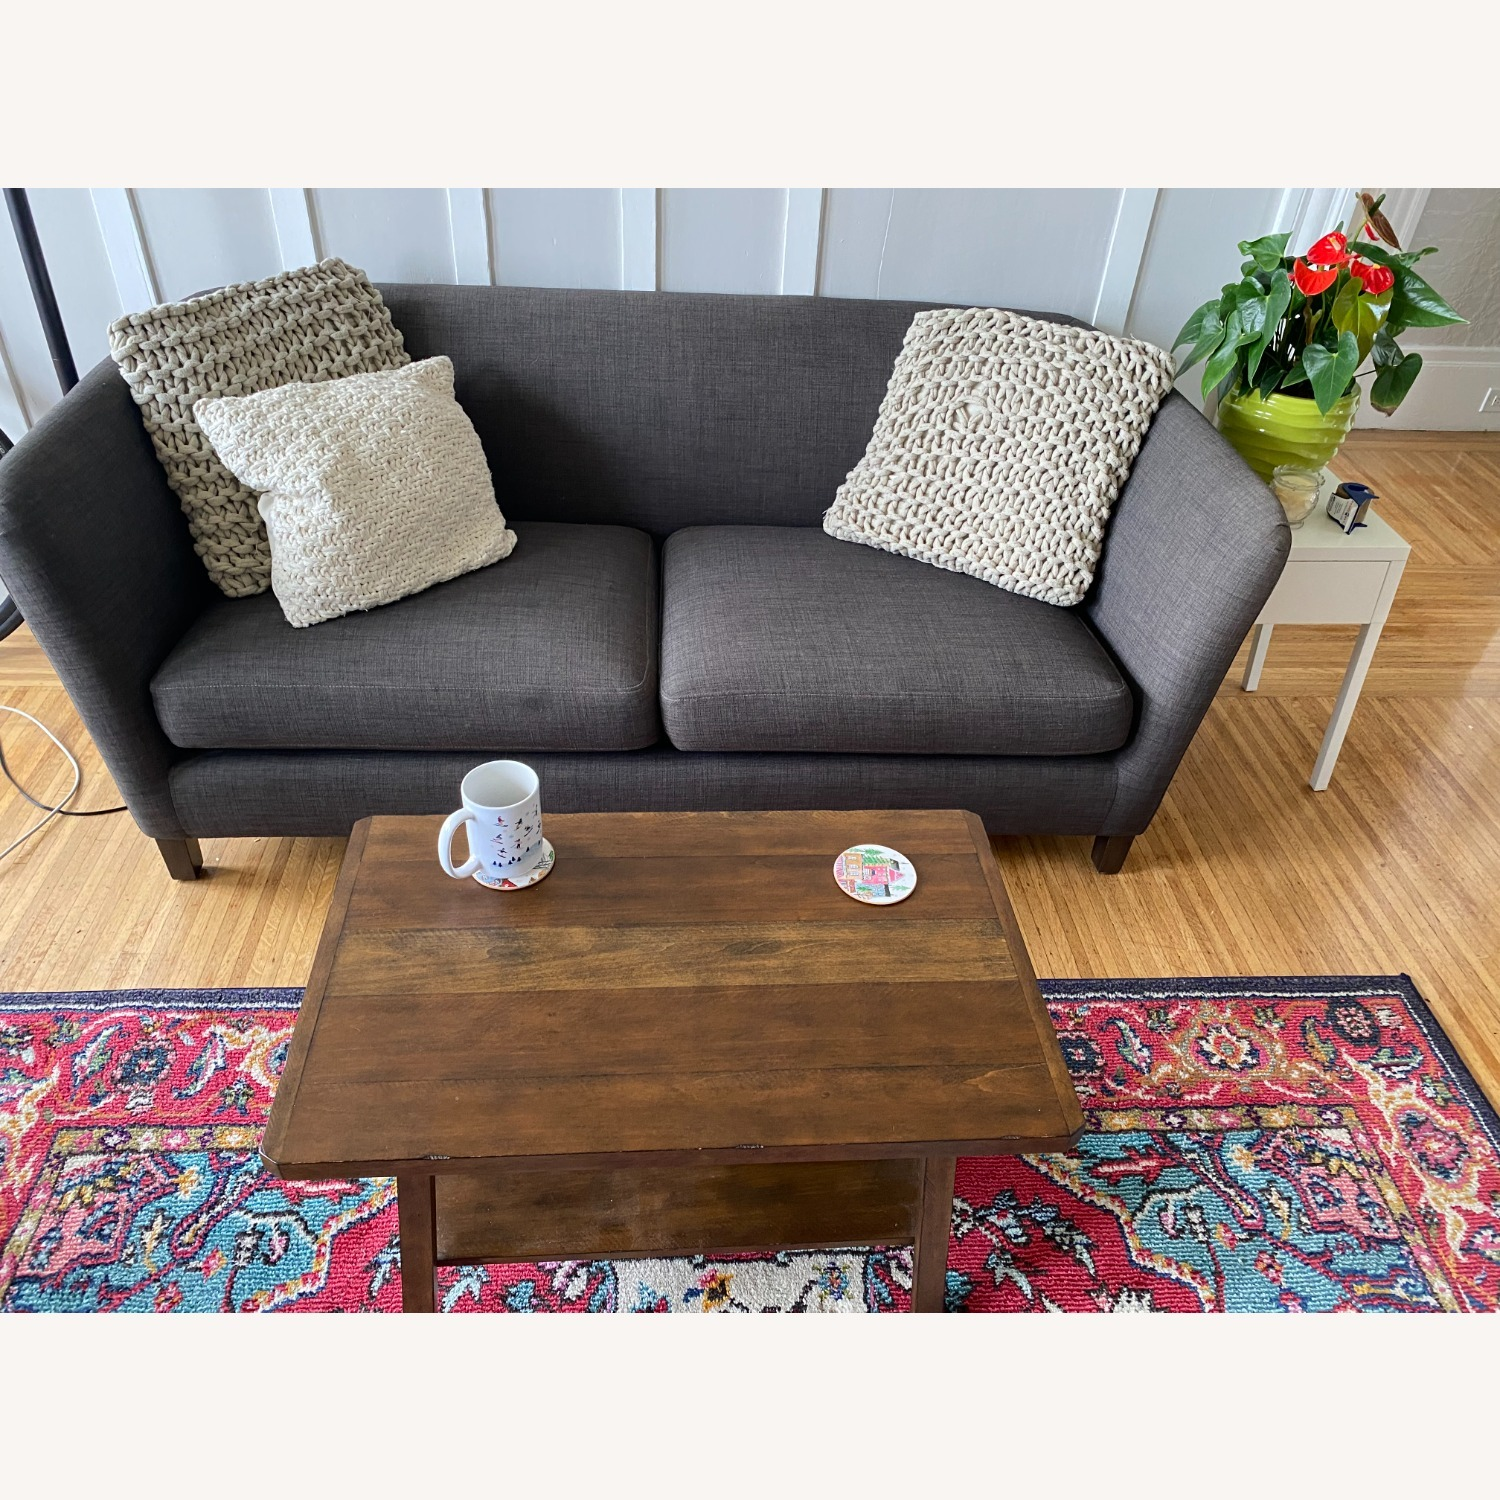 Crate and Barrel Loveseat - image-1